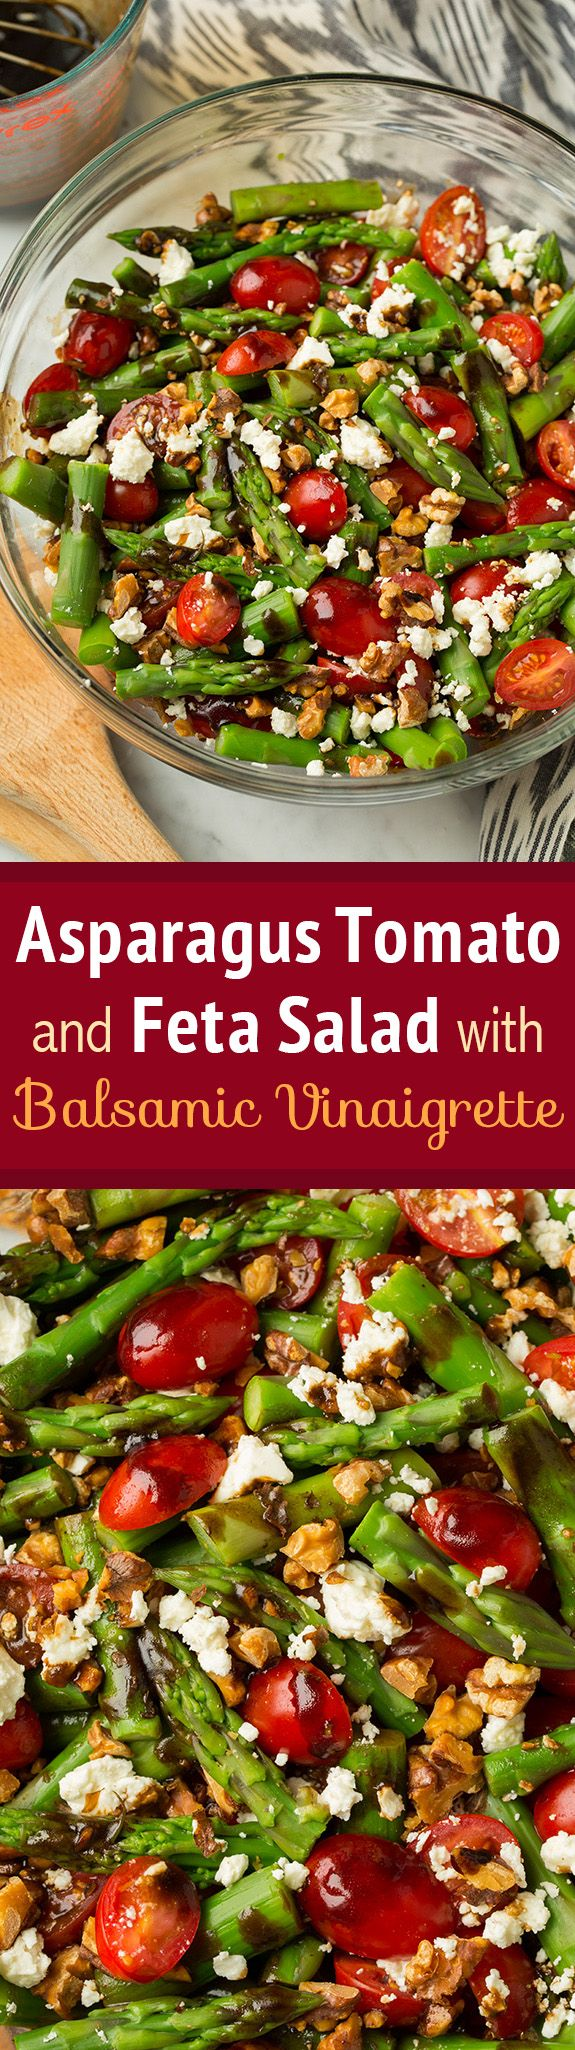 Asparagus, Tomato and Feta Salad with Balsamic Vinaigrette - Best spring salad!! Absolutely loved this as did everyone else!